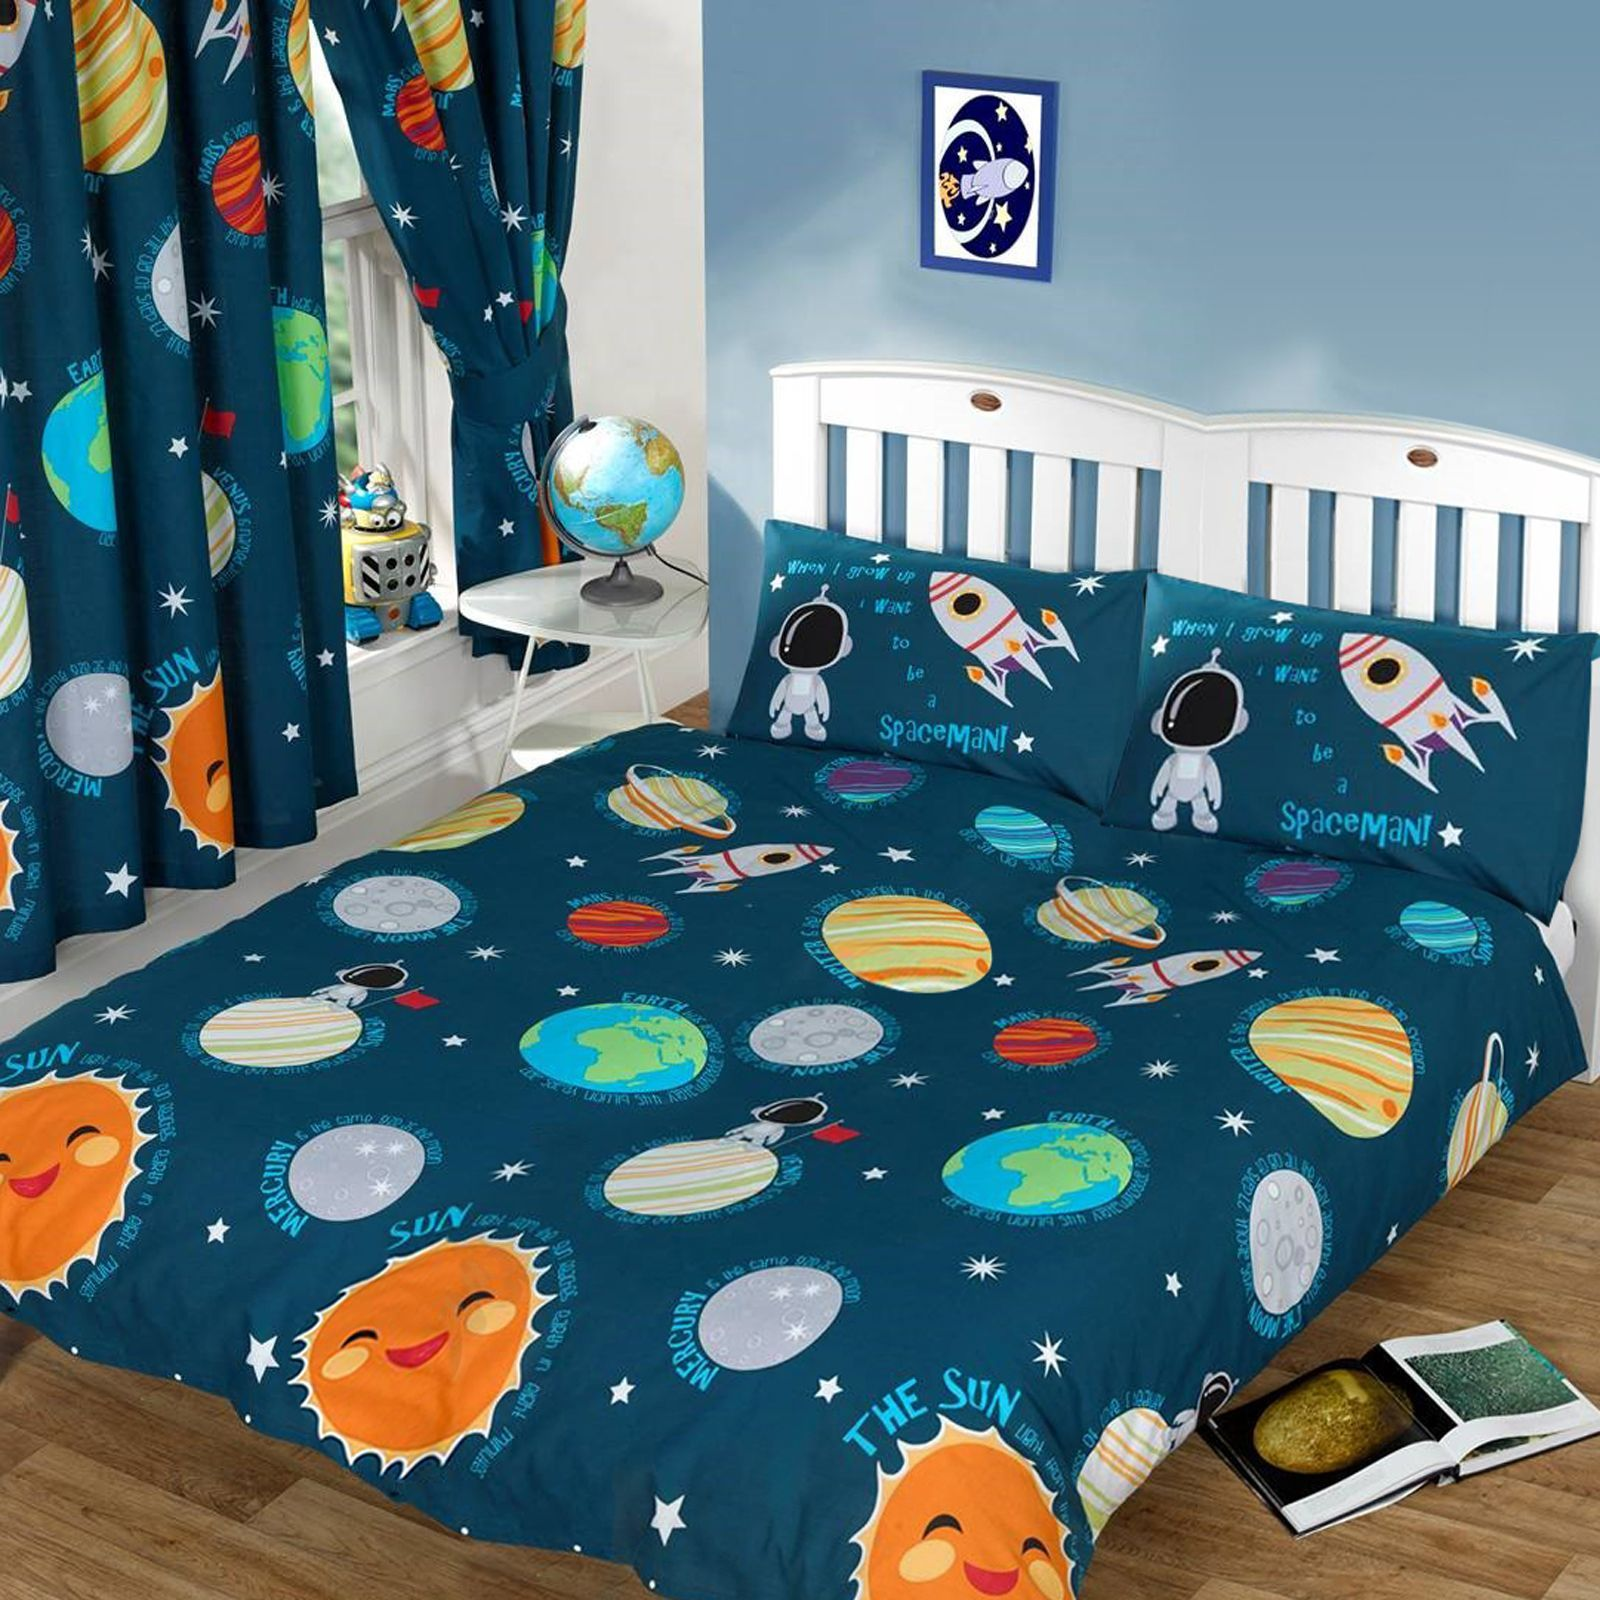 Little Spaceman Space Bedding Solar System Planets Crib